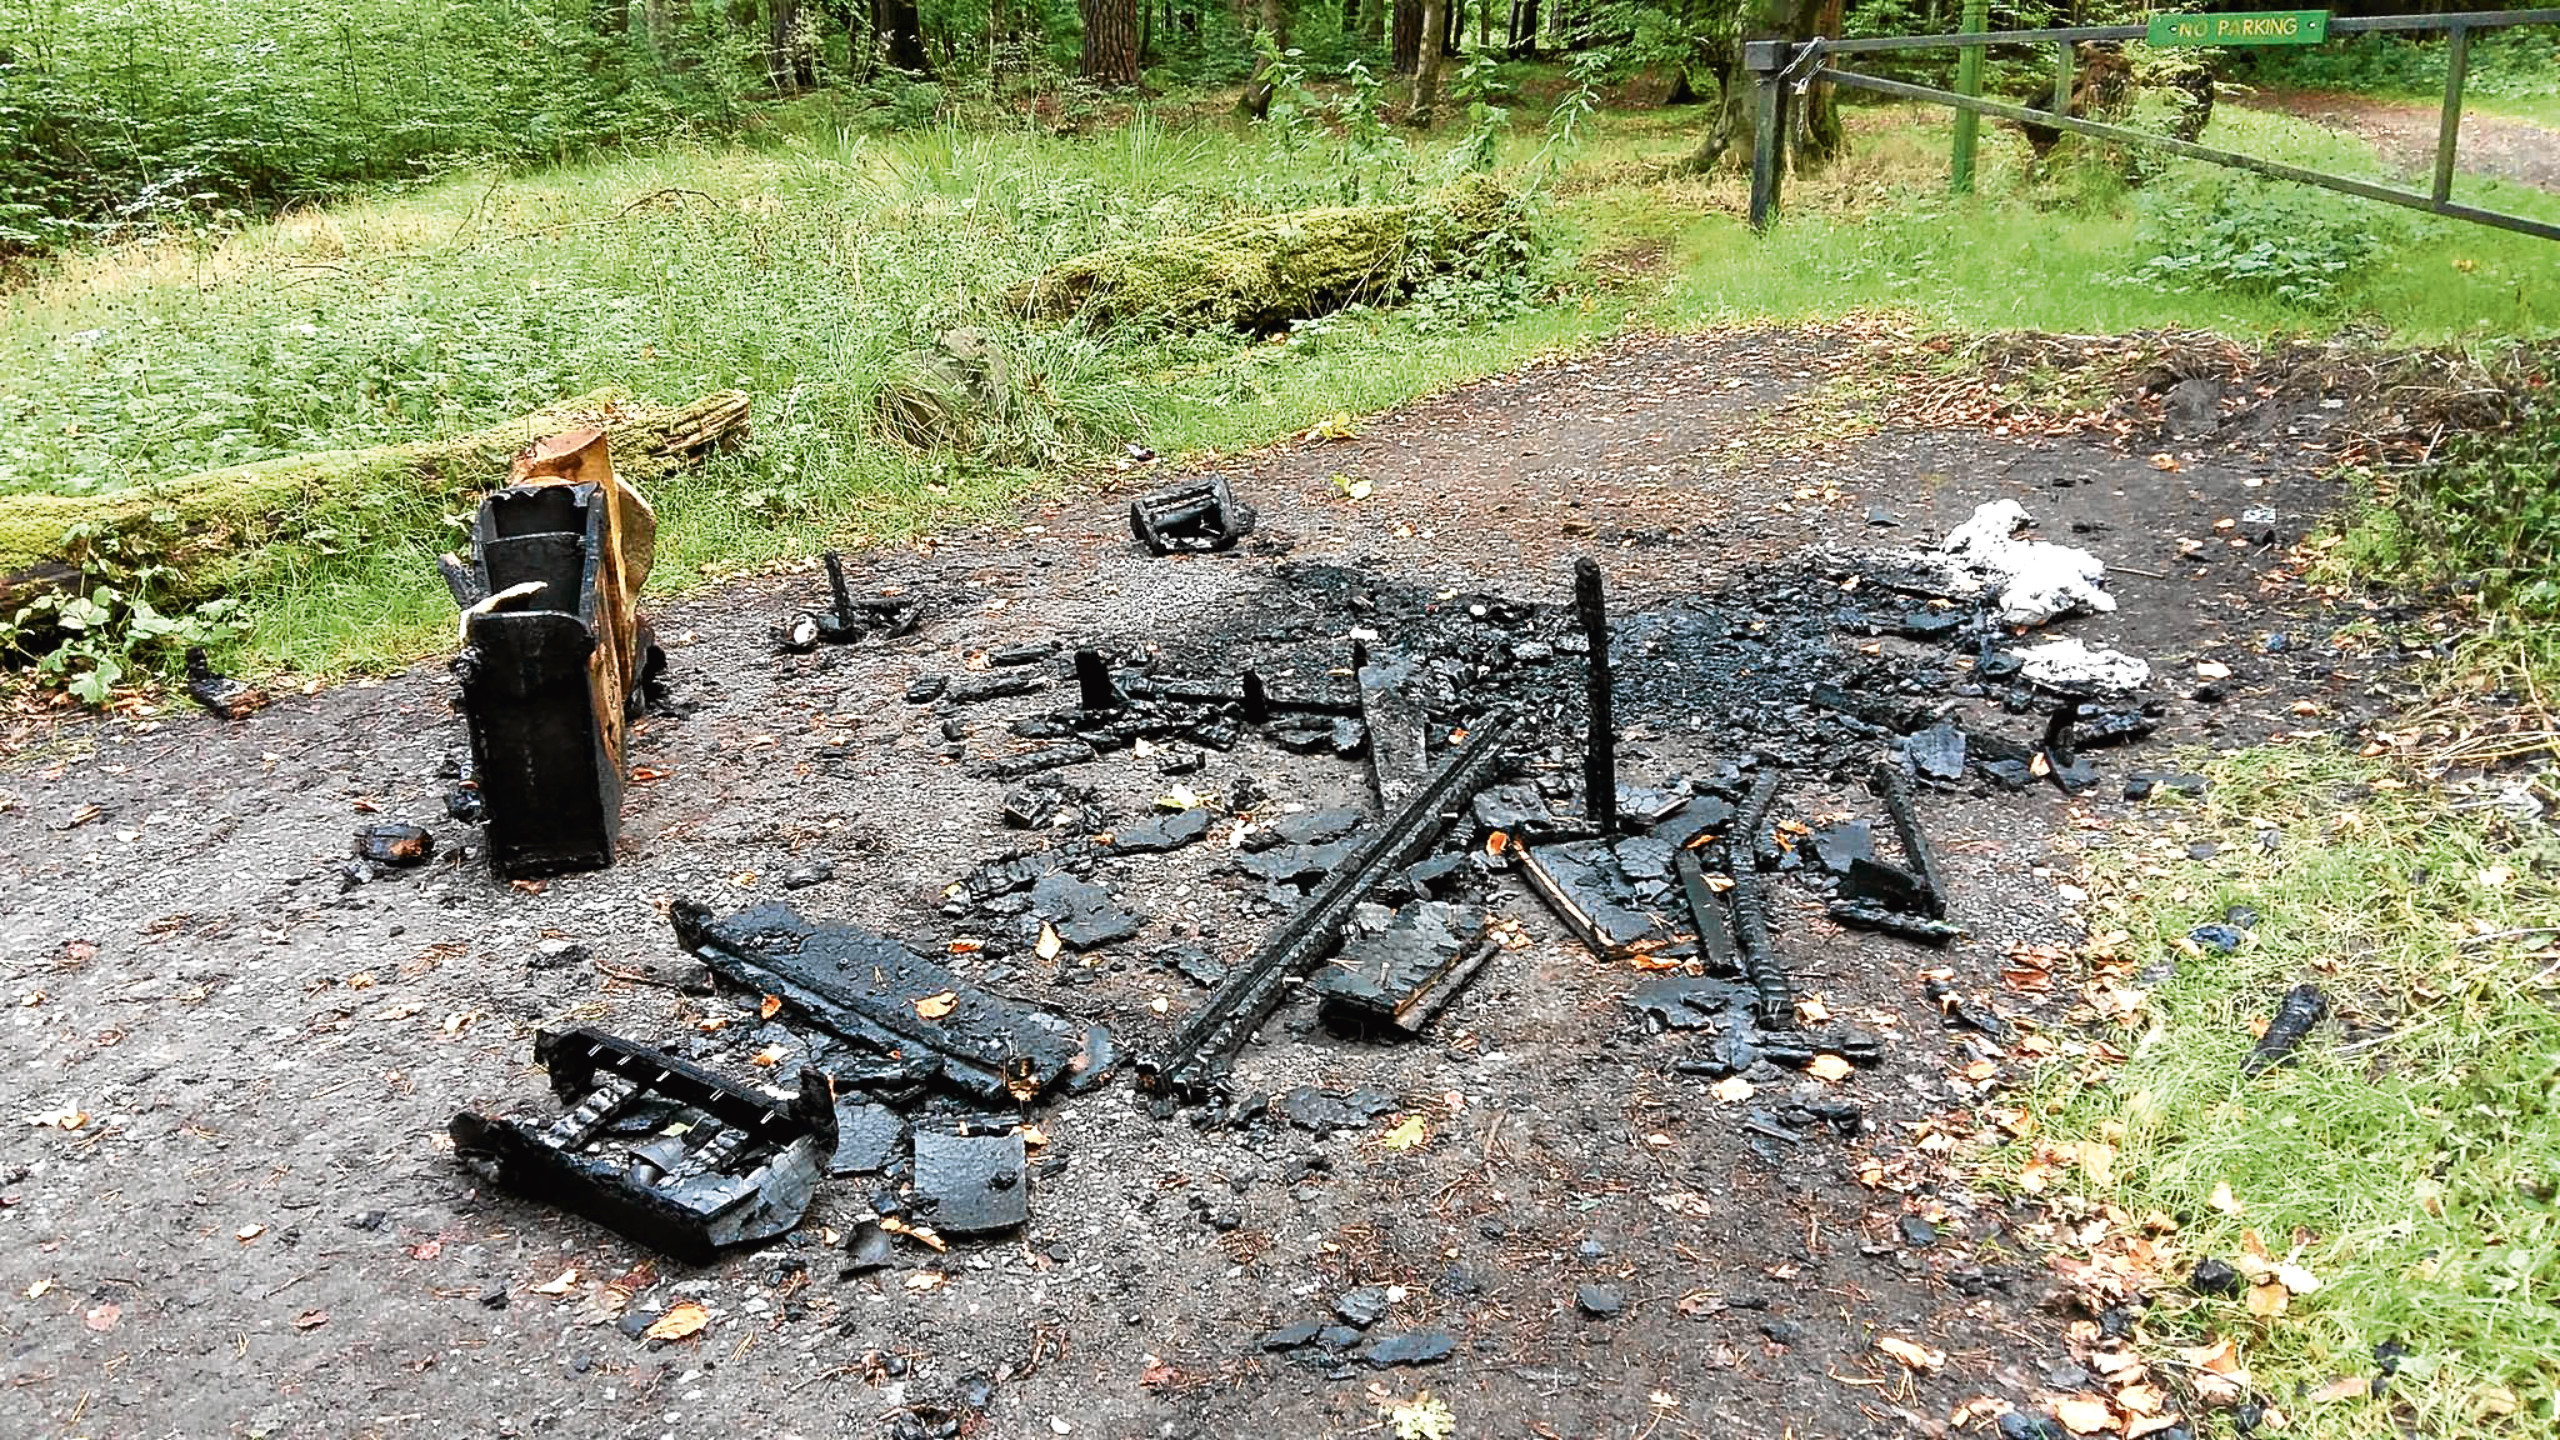 The aftermath of the sofa blaze at Templeton Woods